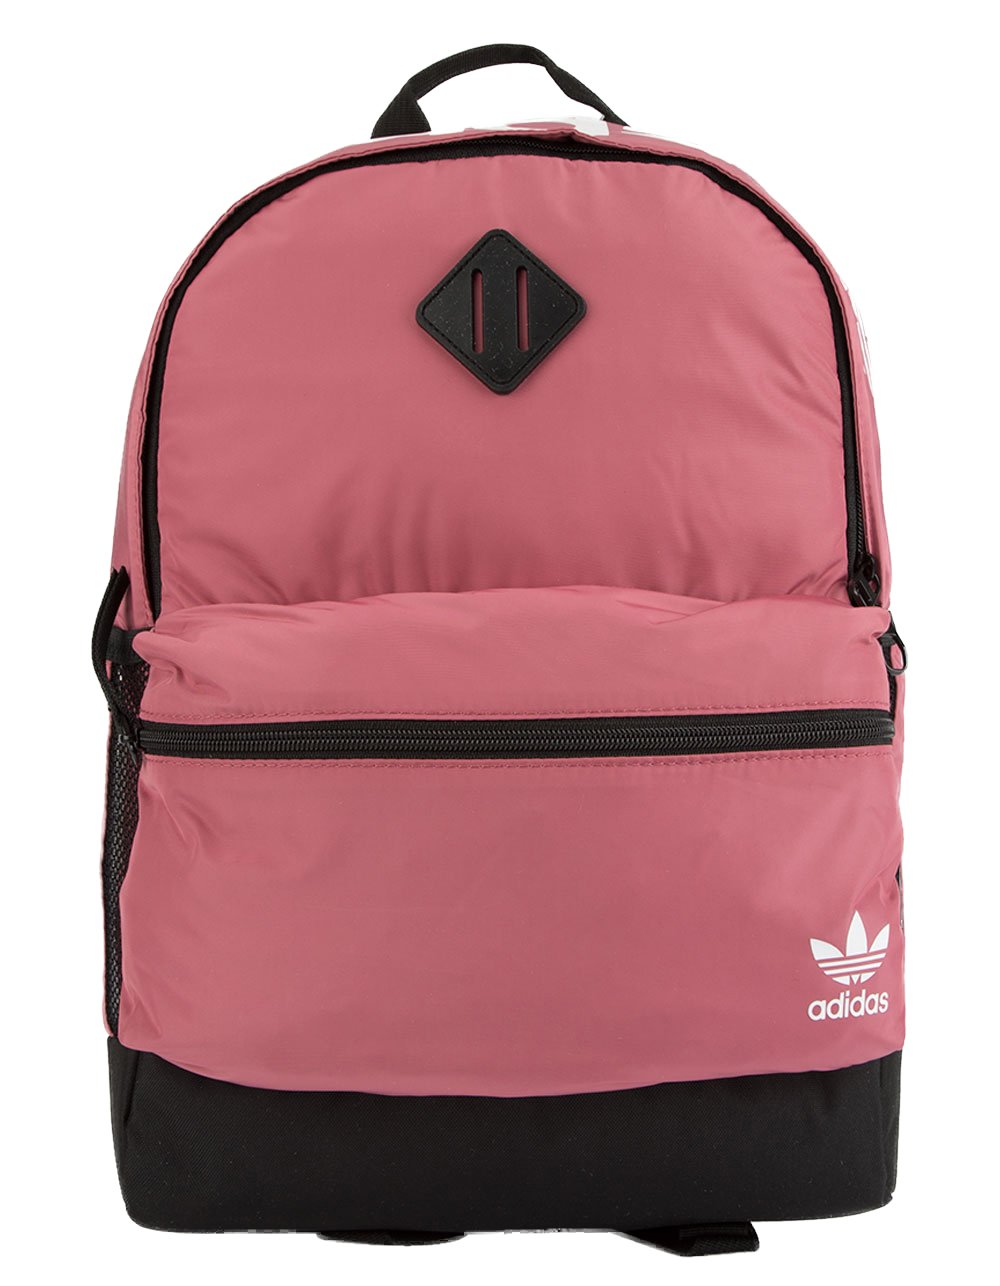 7df85f0833c8 Pink Adidas Backpack- Fenix Toulouse Handball